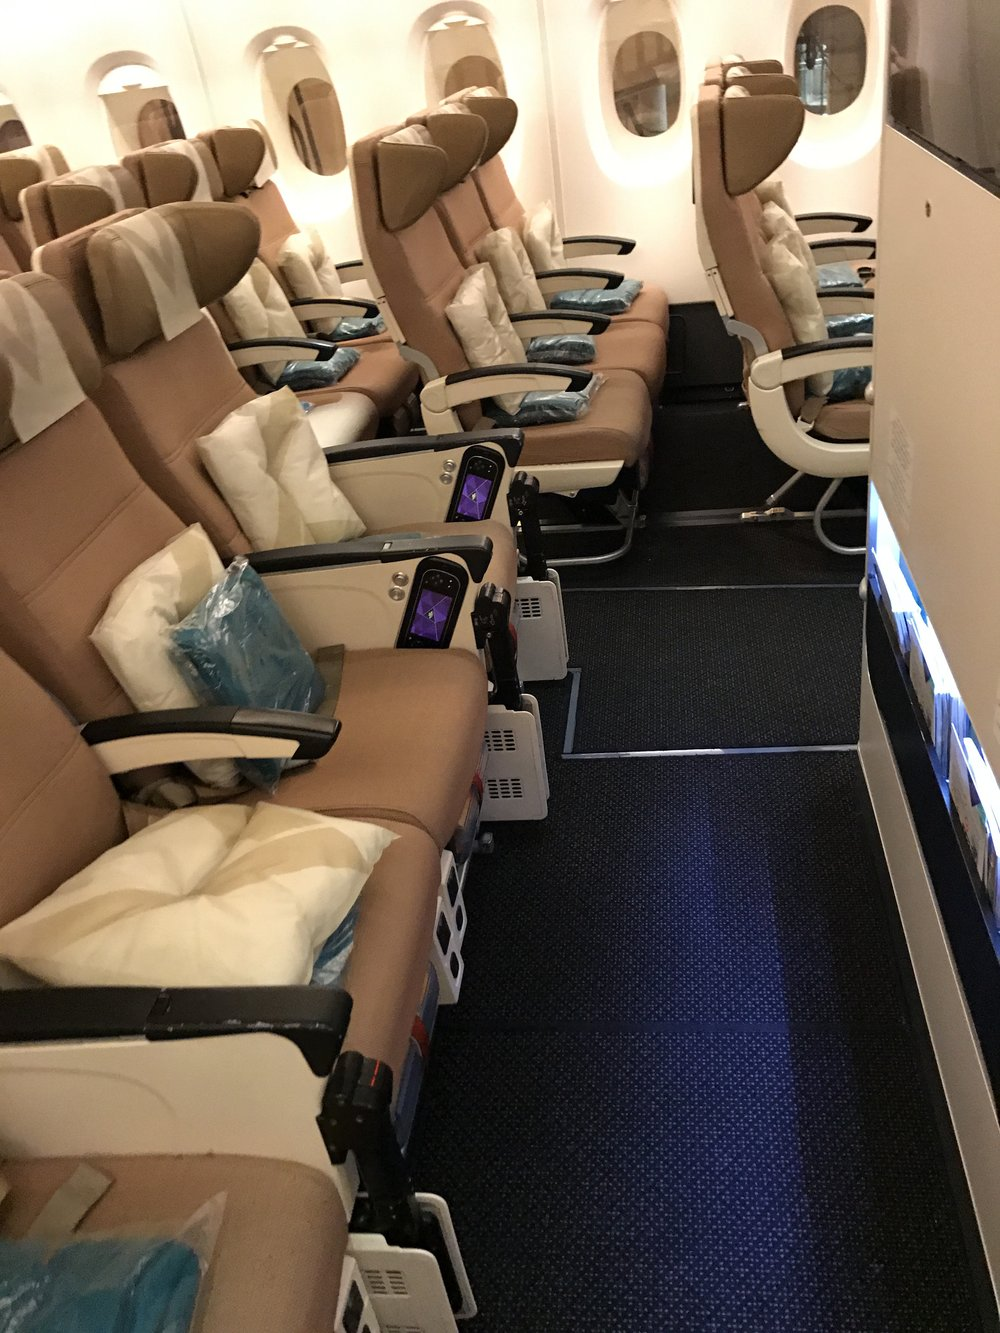 - I was impressed with Etihad Economy 'Smart Seats' in the Airbus 380 and Boeing 787. They have a unique headrest that acts as a shoulder to learn on and surprinsingly generous recline and enough legroom space! Inflight meals with a choice of three main courses and a vegetarian option.